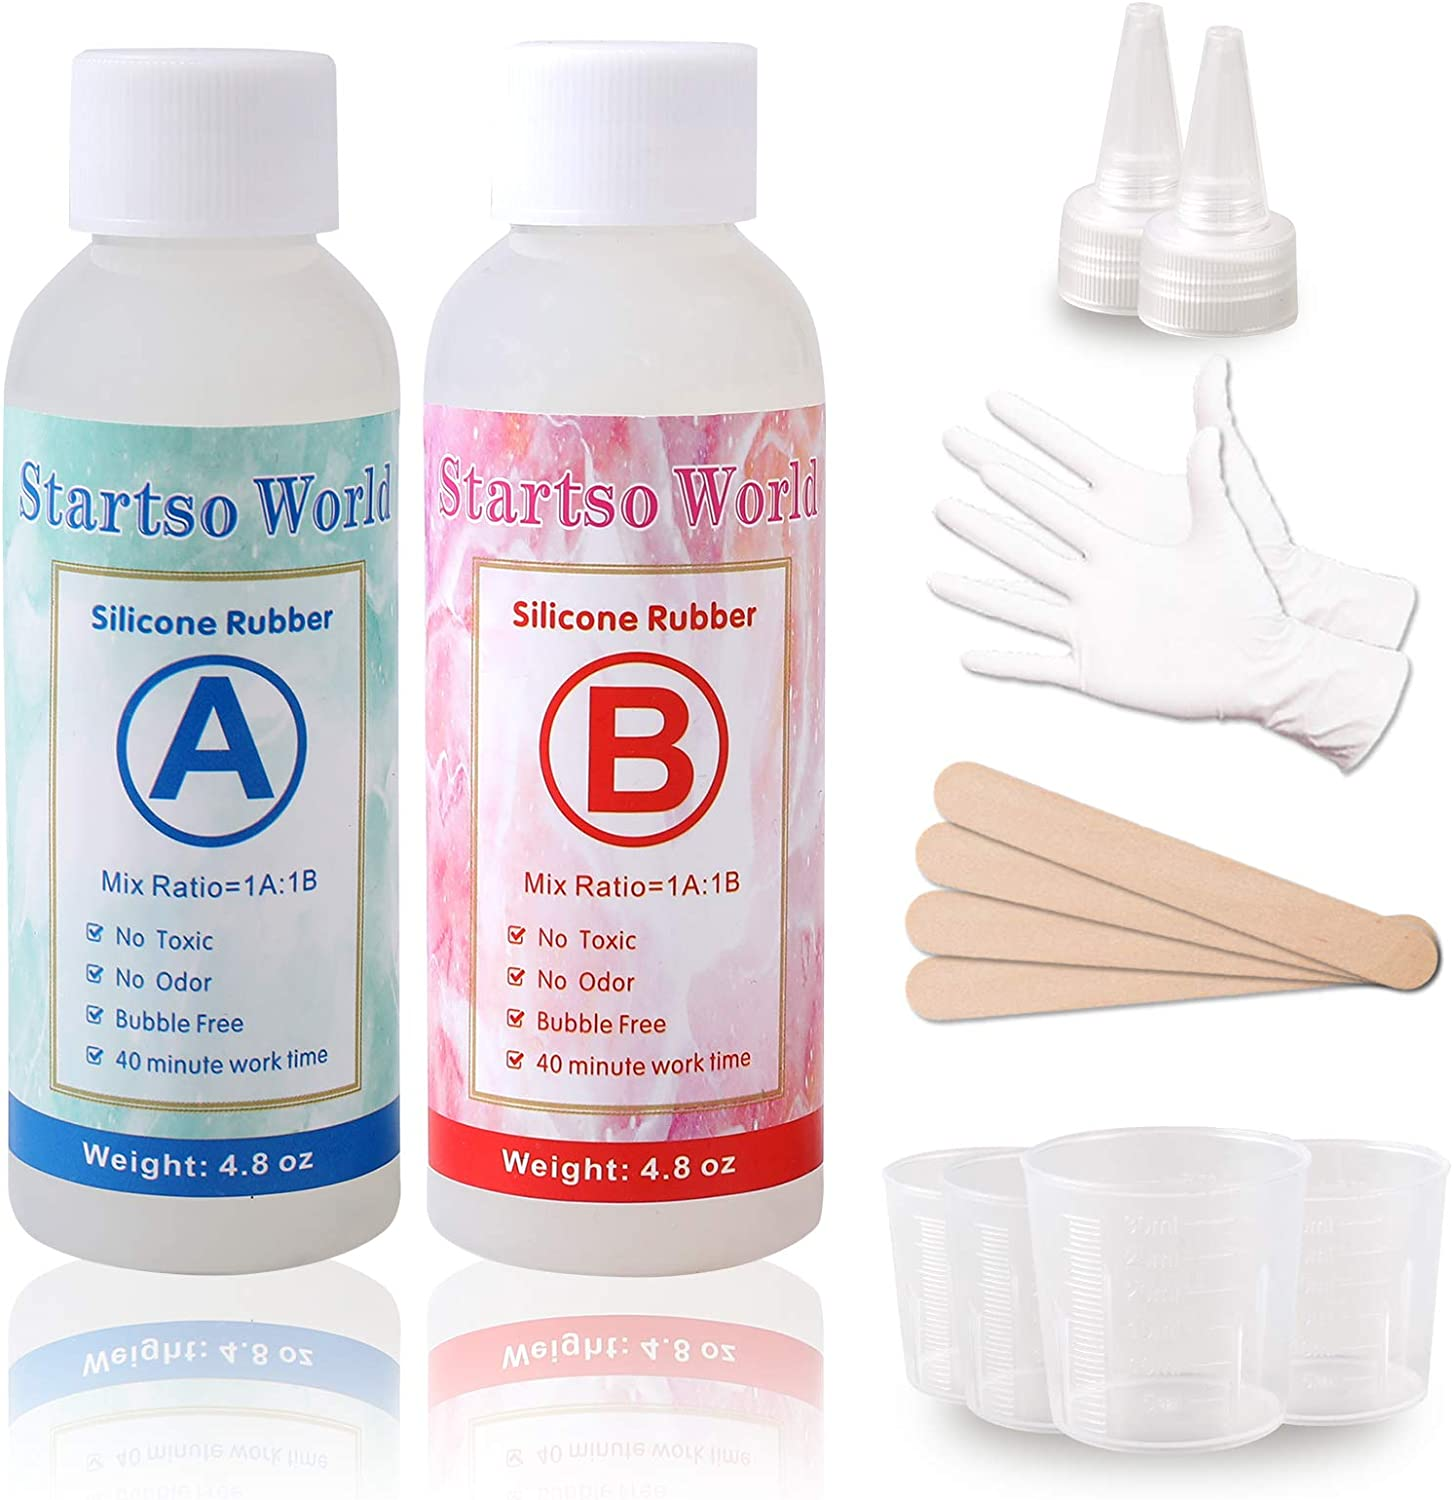 Silicone-Molds-Making-Kit Liquid Translucent Silicone Rubber for Resin Casting - 9.6 Oz | with Tool kit 4 pcs Graduated Cups, 4pcs Sticks, 1 Pair Dropper, 1 Pair Rubber Gloves by Startso World…